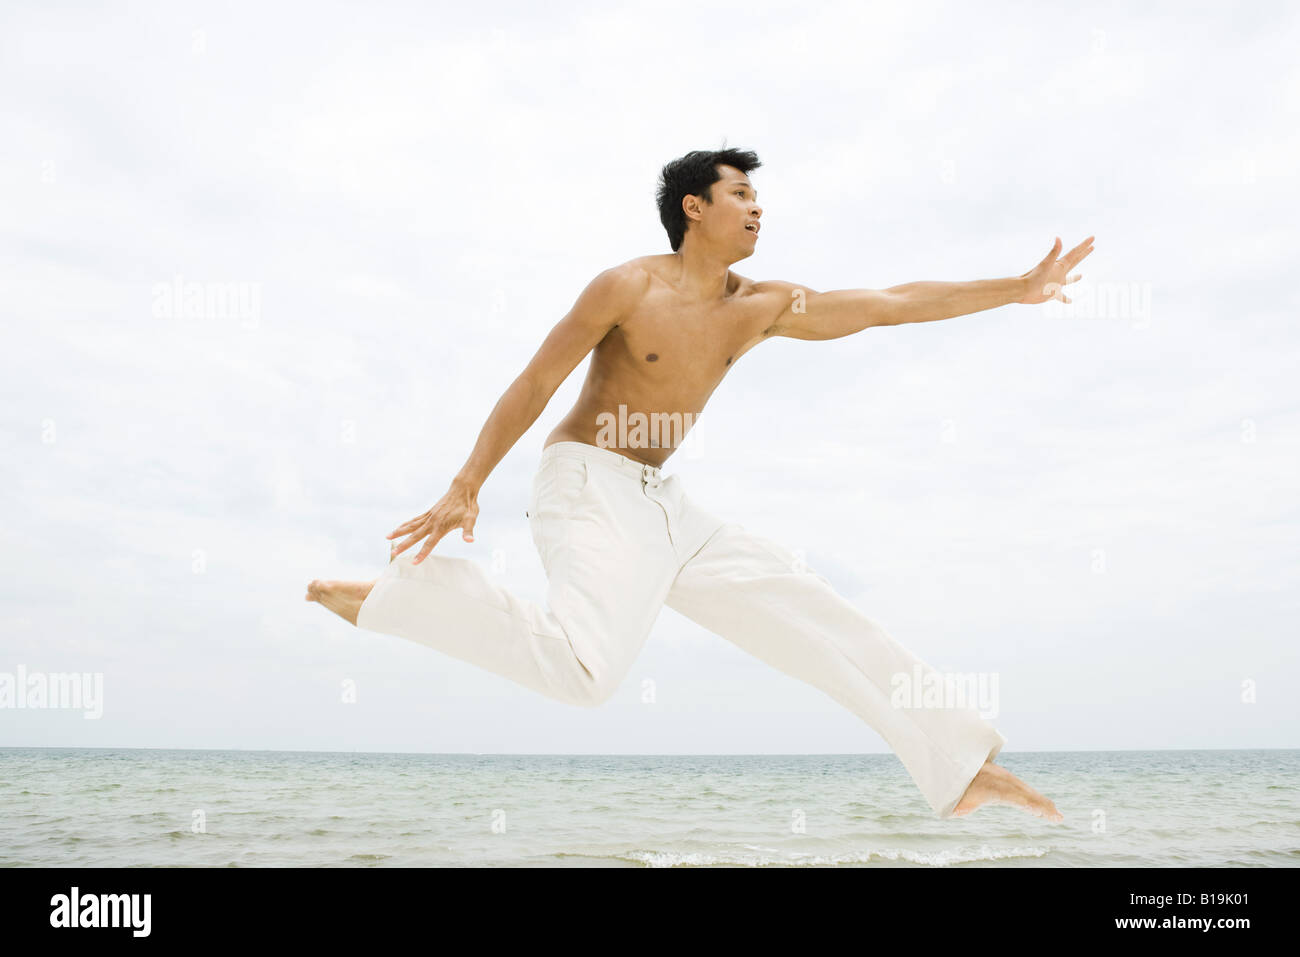 Man leaping in the air, side view, ocean in background - Stock Image